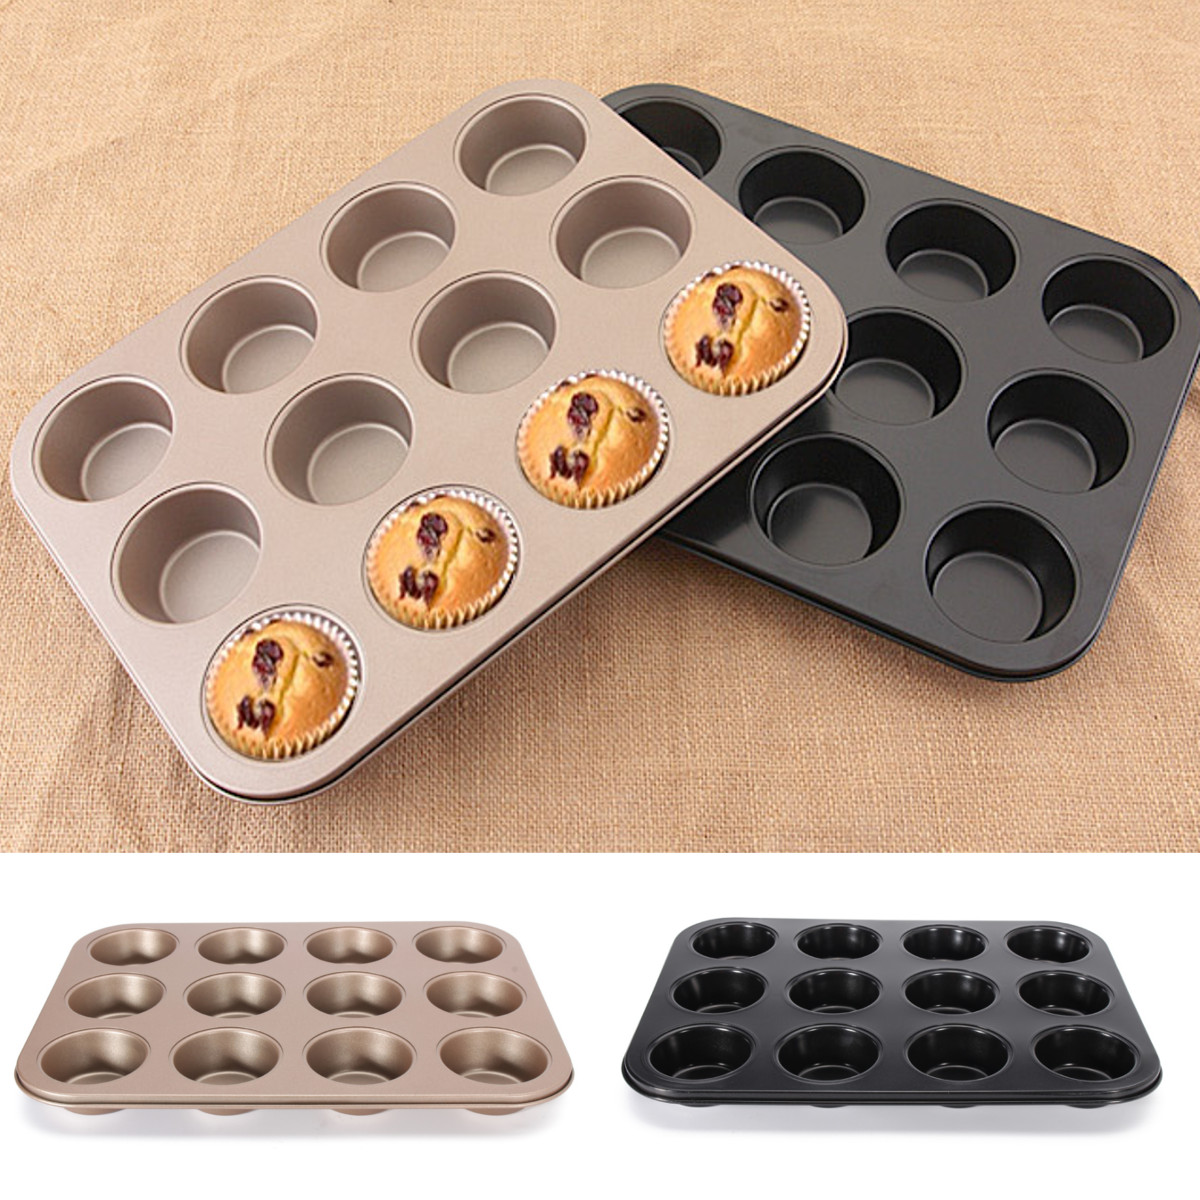 Meigar Large 12 Cup Carbon Steel Muffin Cupcake Mold Nonstick Bakeware Baking Pan Tray